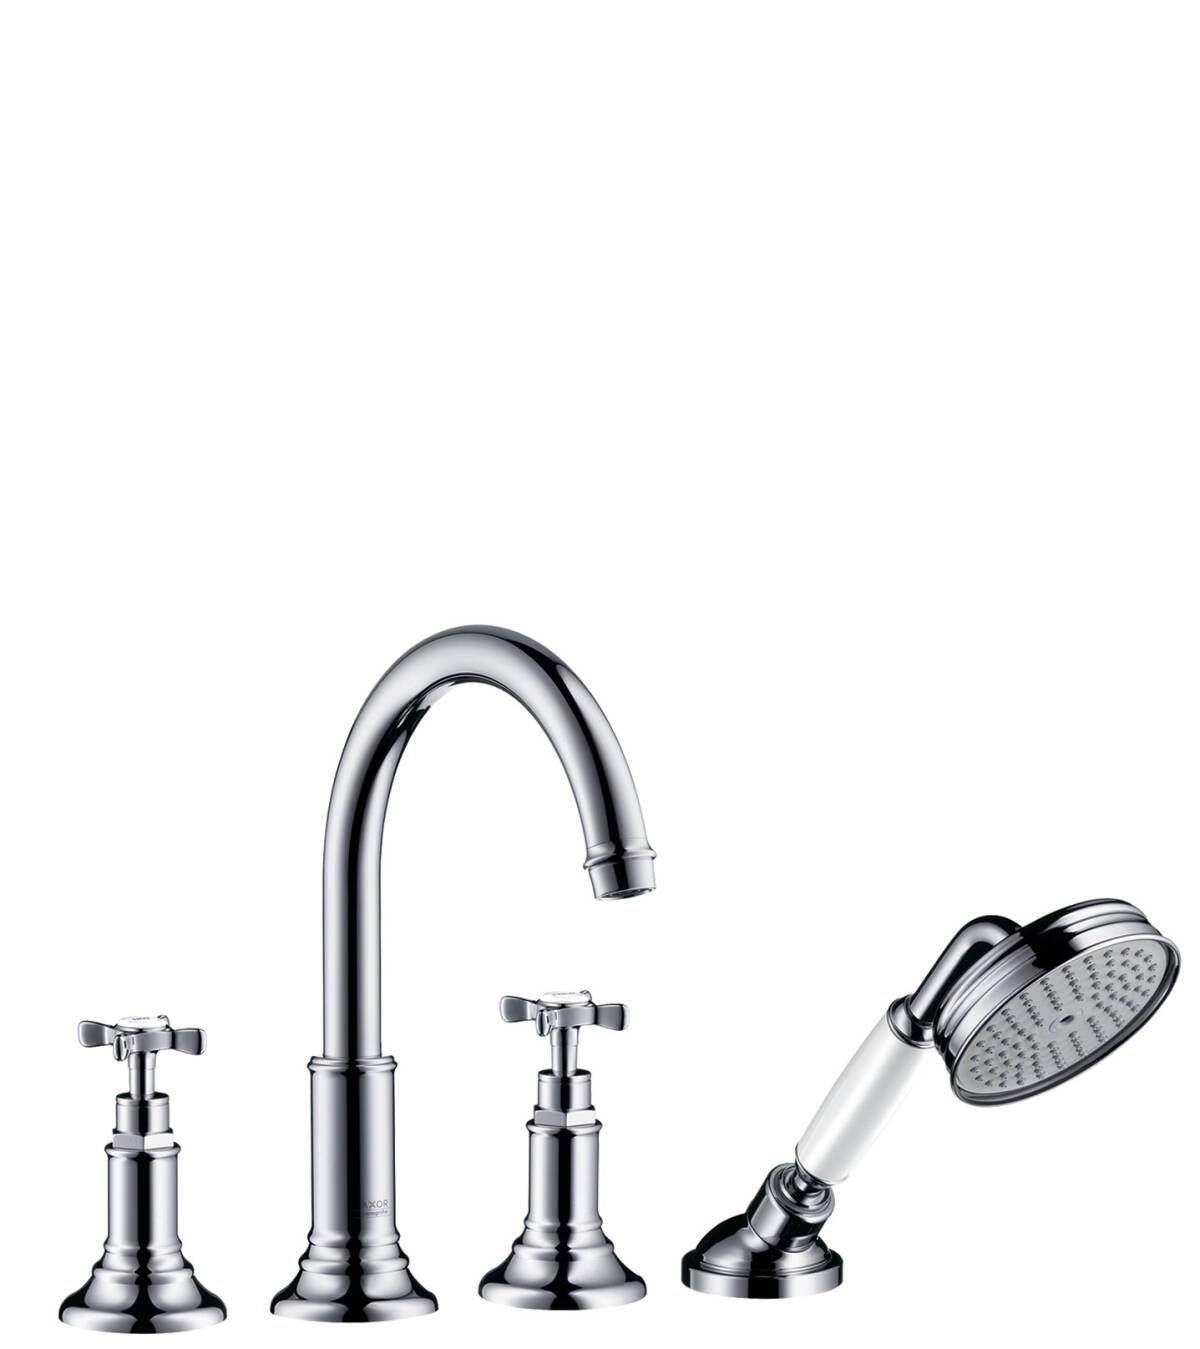 4-hole tile mounted bath mixer with cross handles, Polished Nickel, 16544830